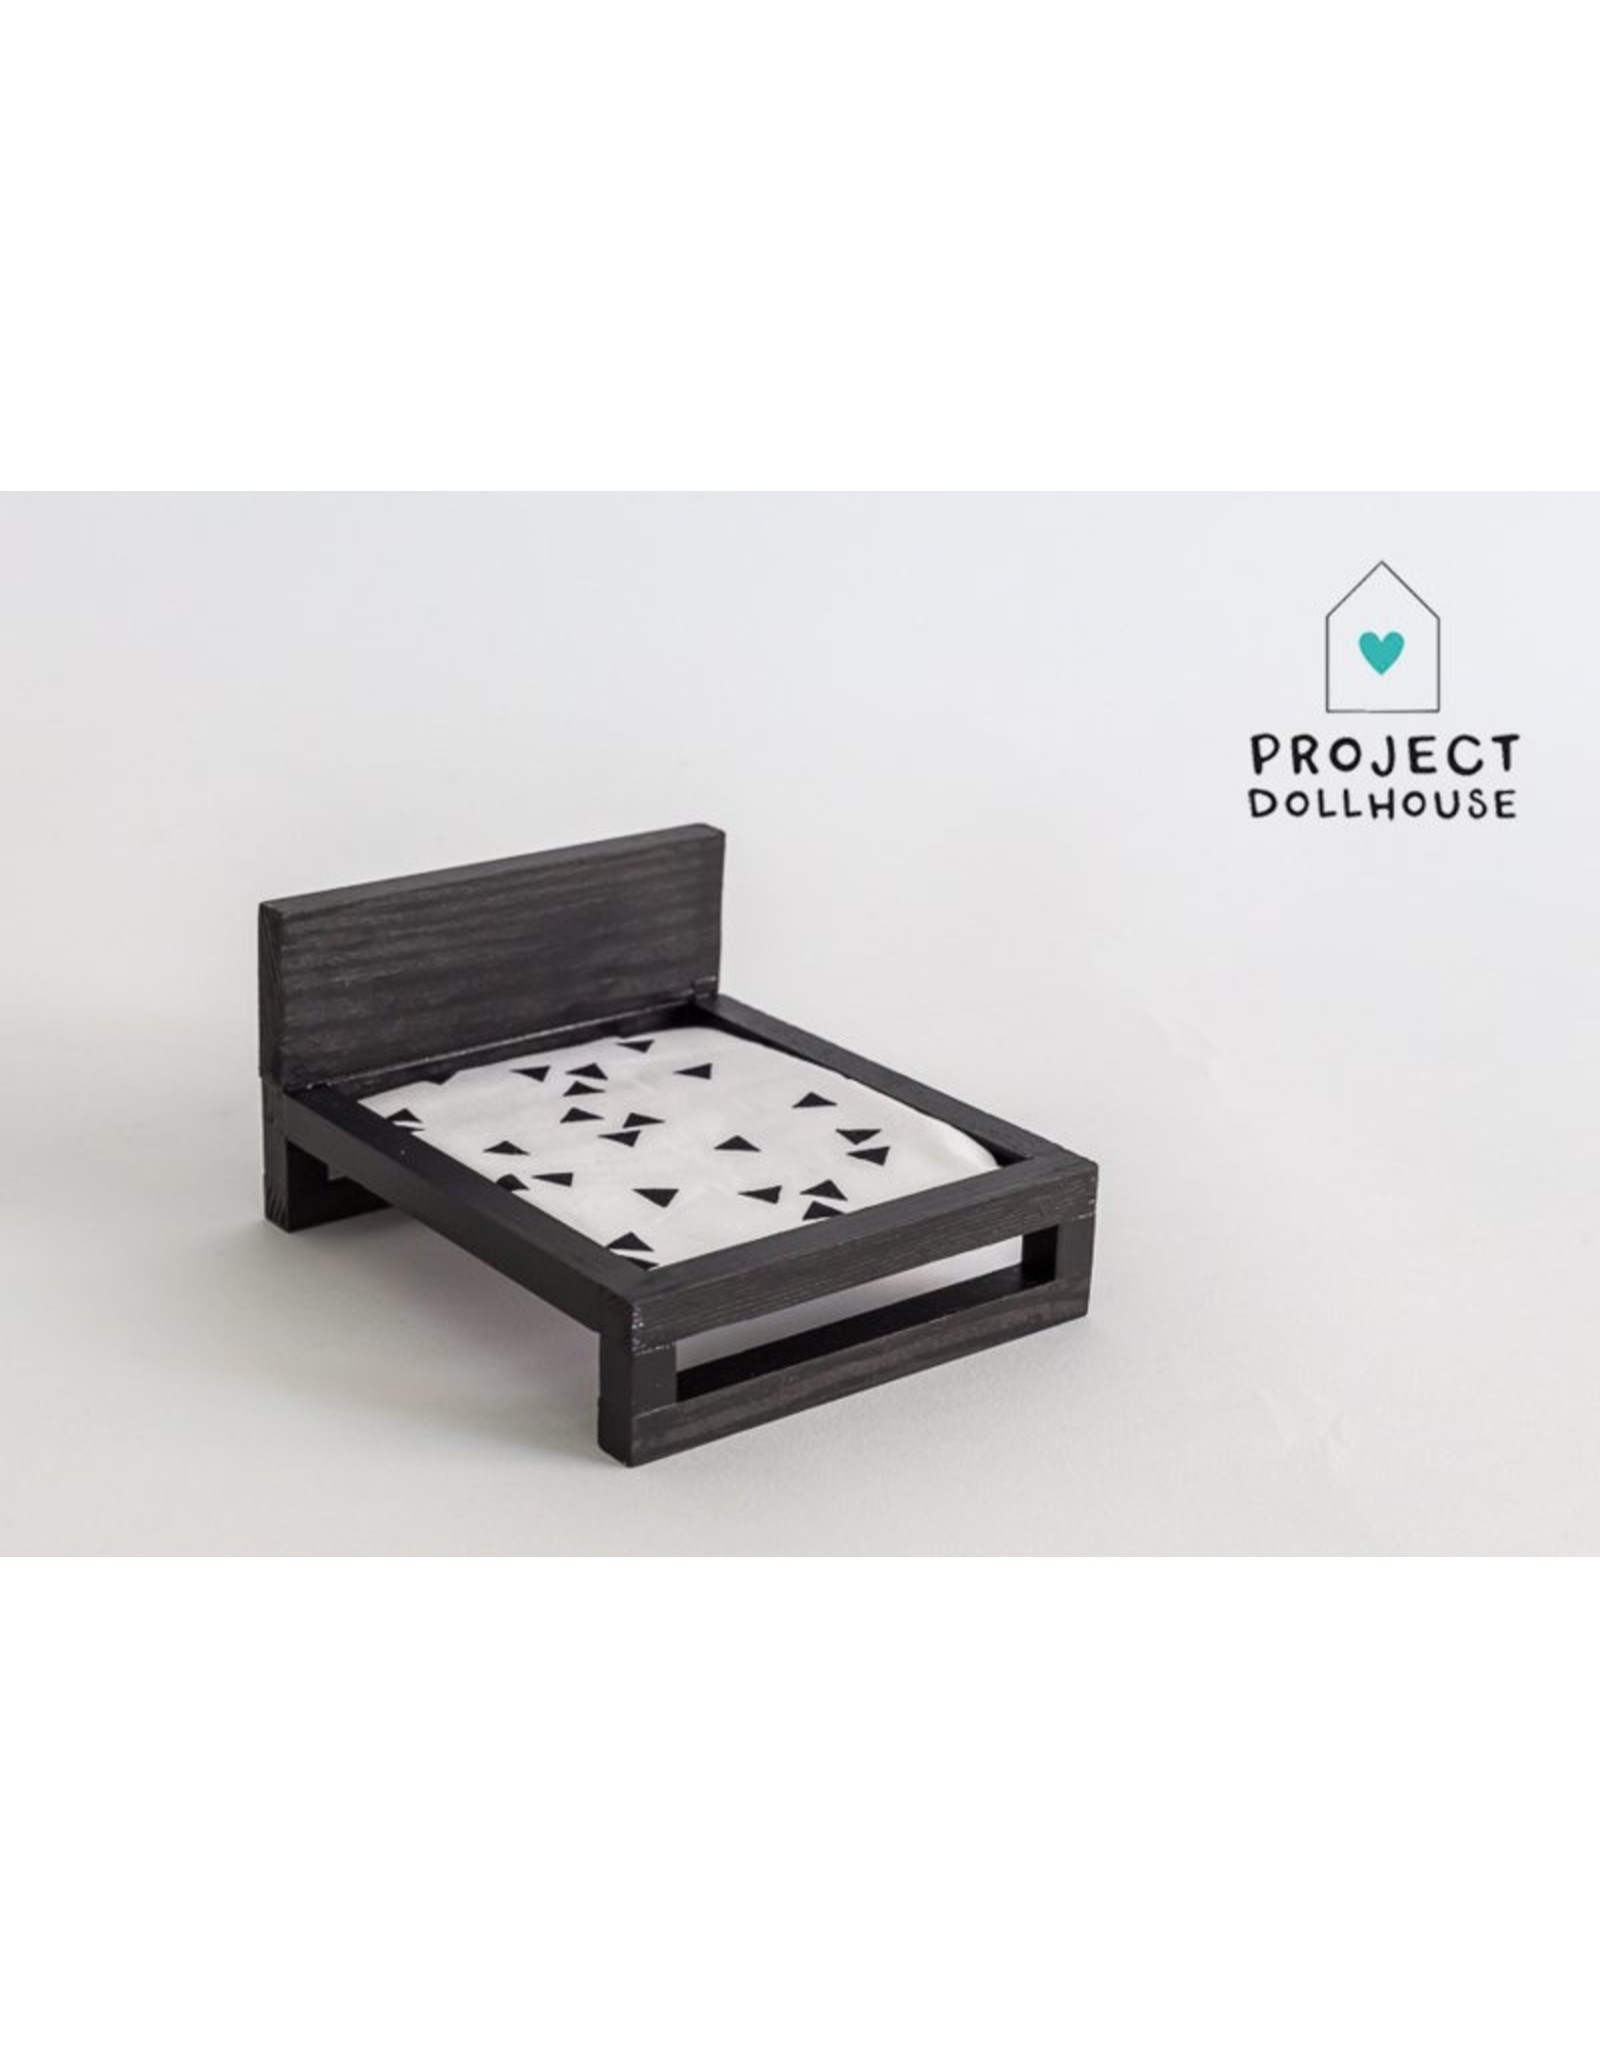 Project Dollhouse Tweepersoonsbed Zwart